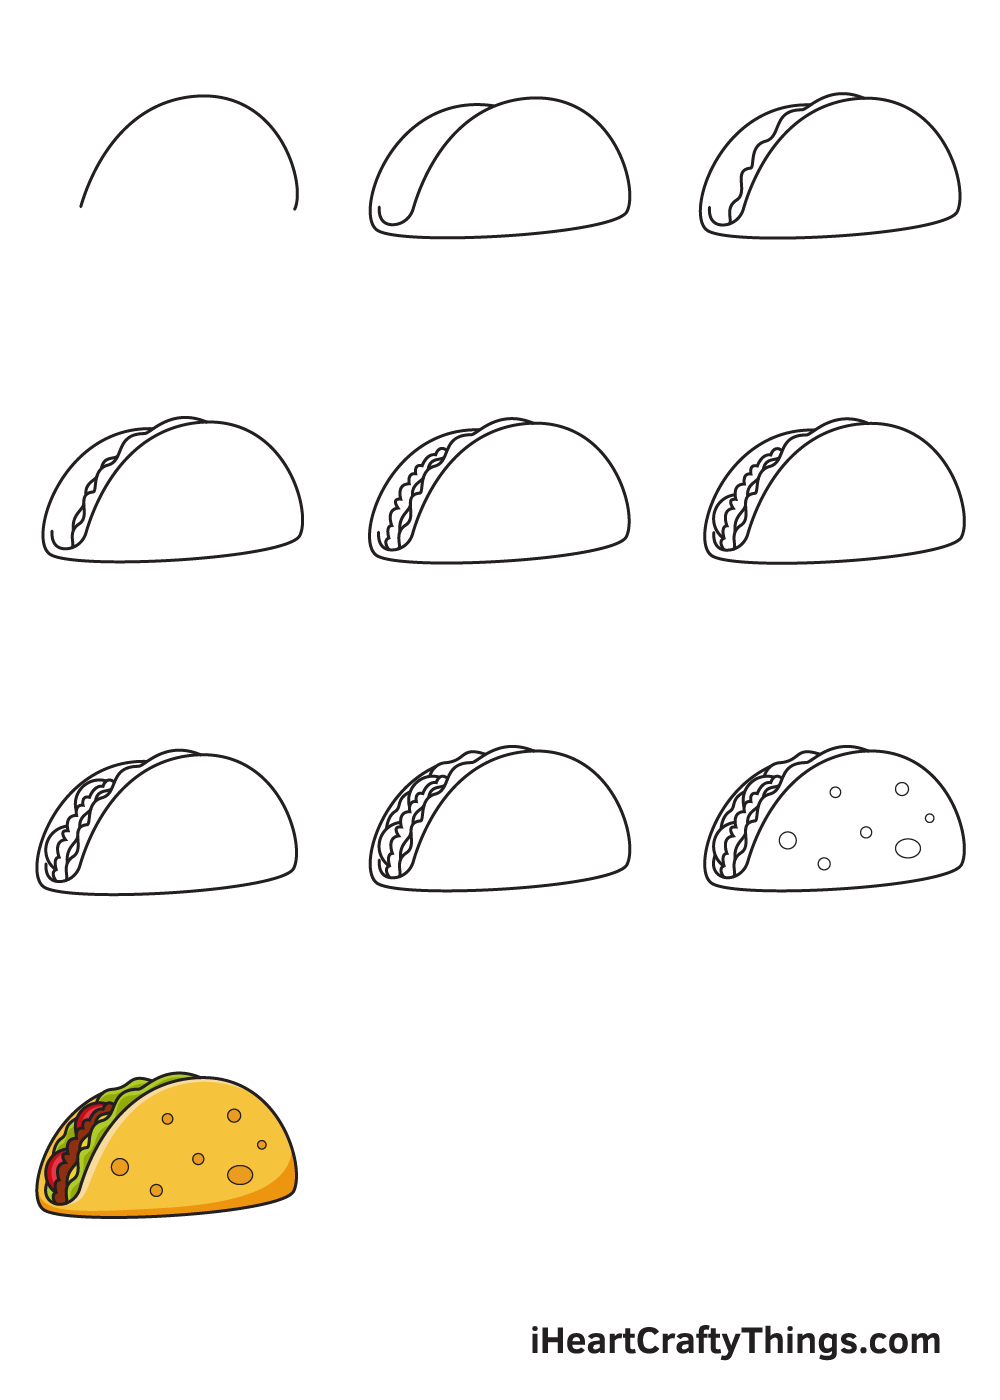 Taco Drawing - How To Draw A Taco Step By Step